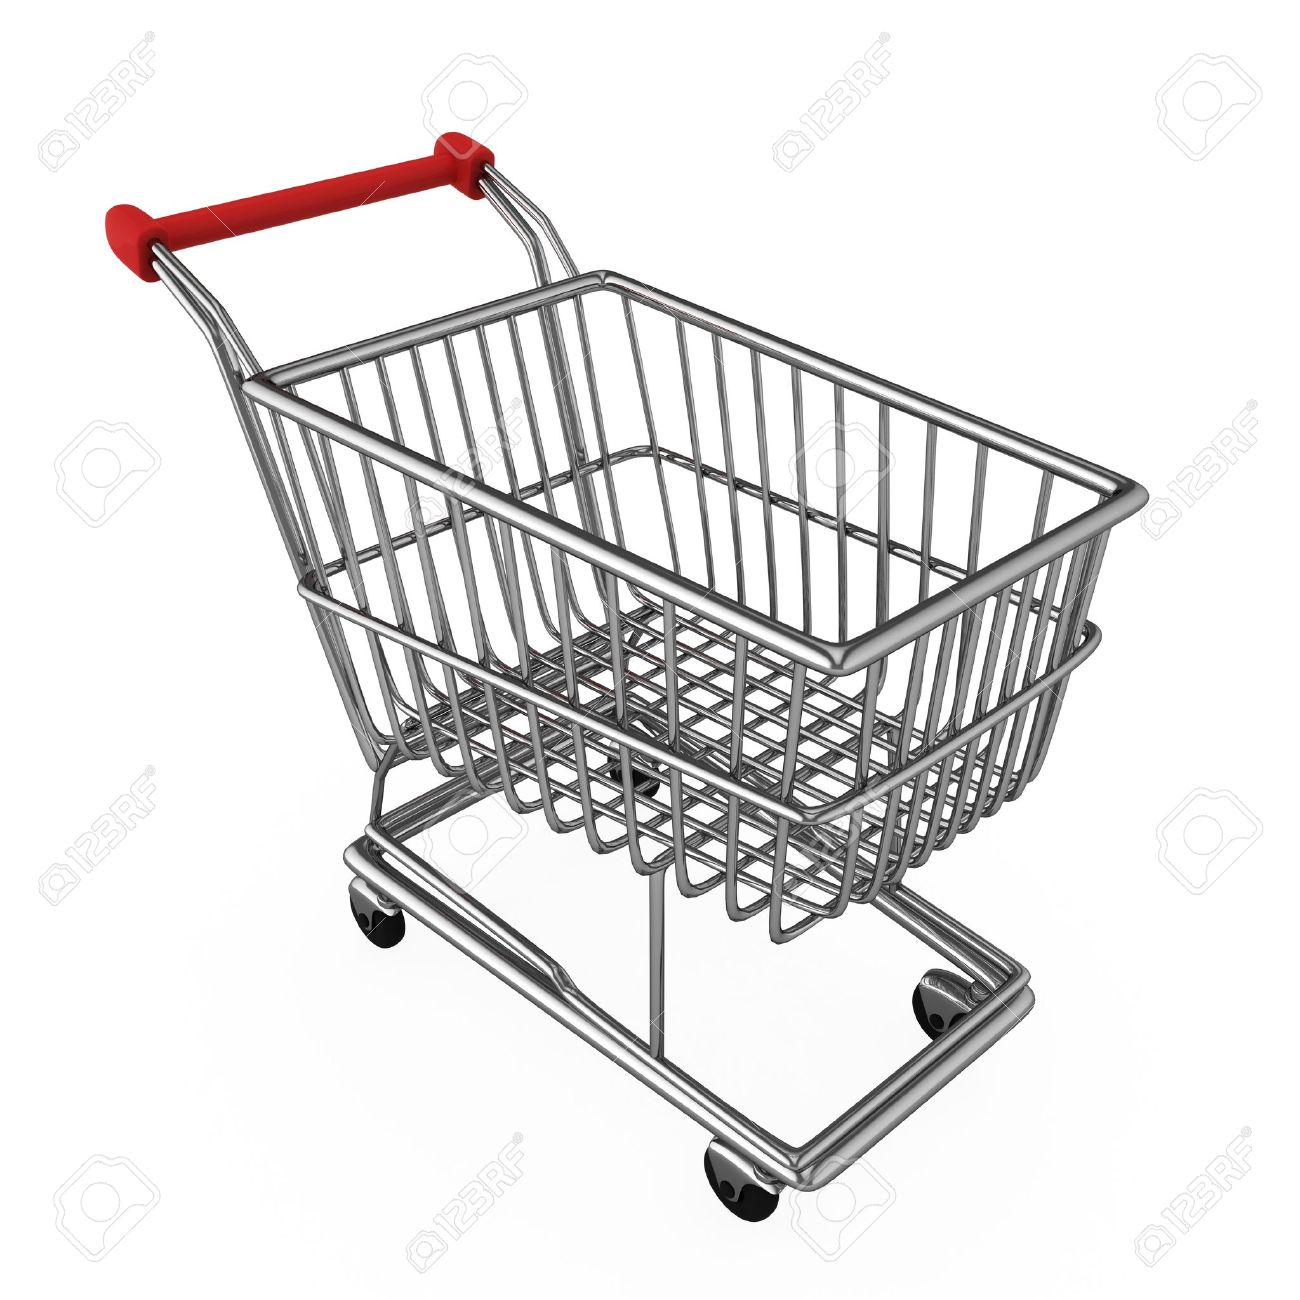 3d illustration of a shopping cart stock photo picture and royalty